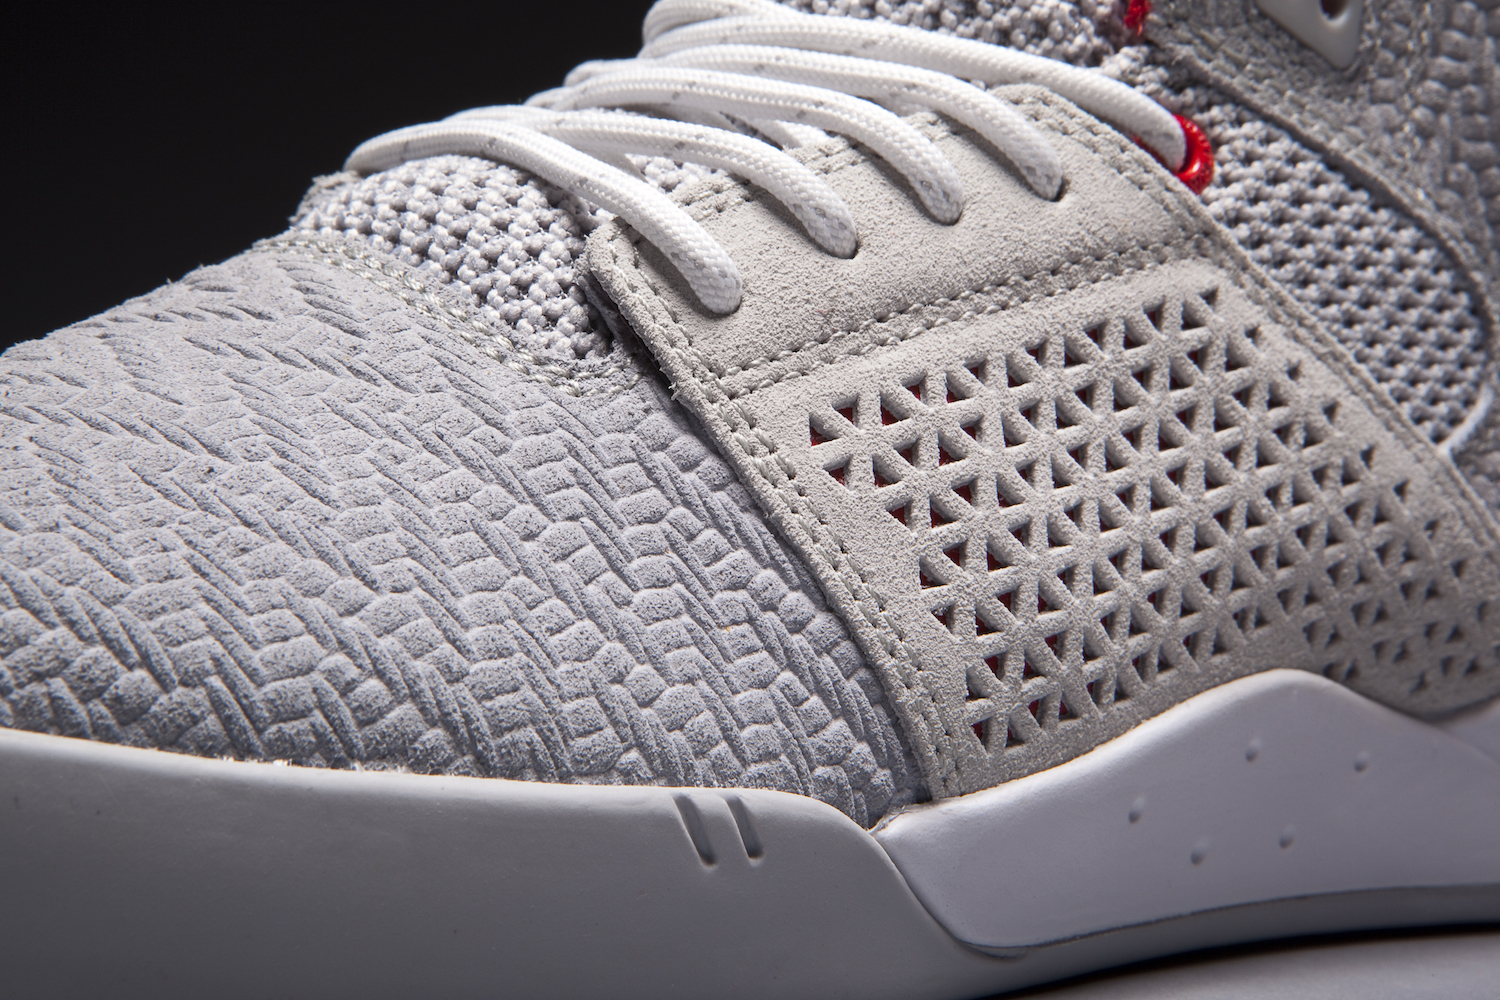 supra and assassins creed footwear collection 2